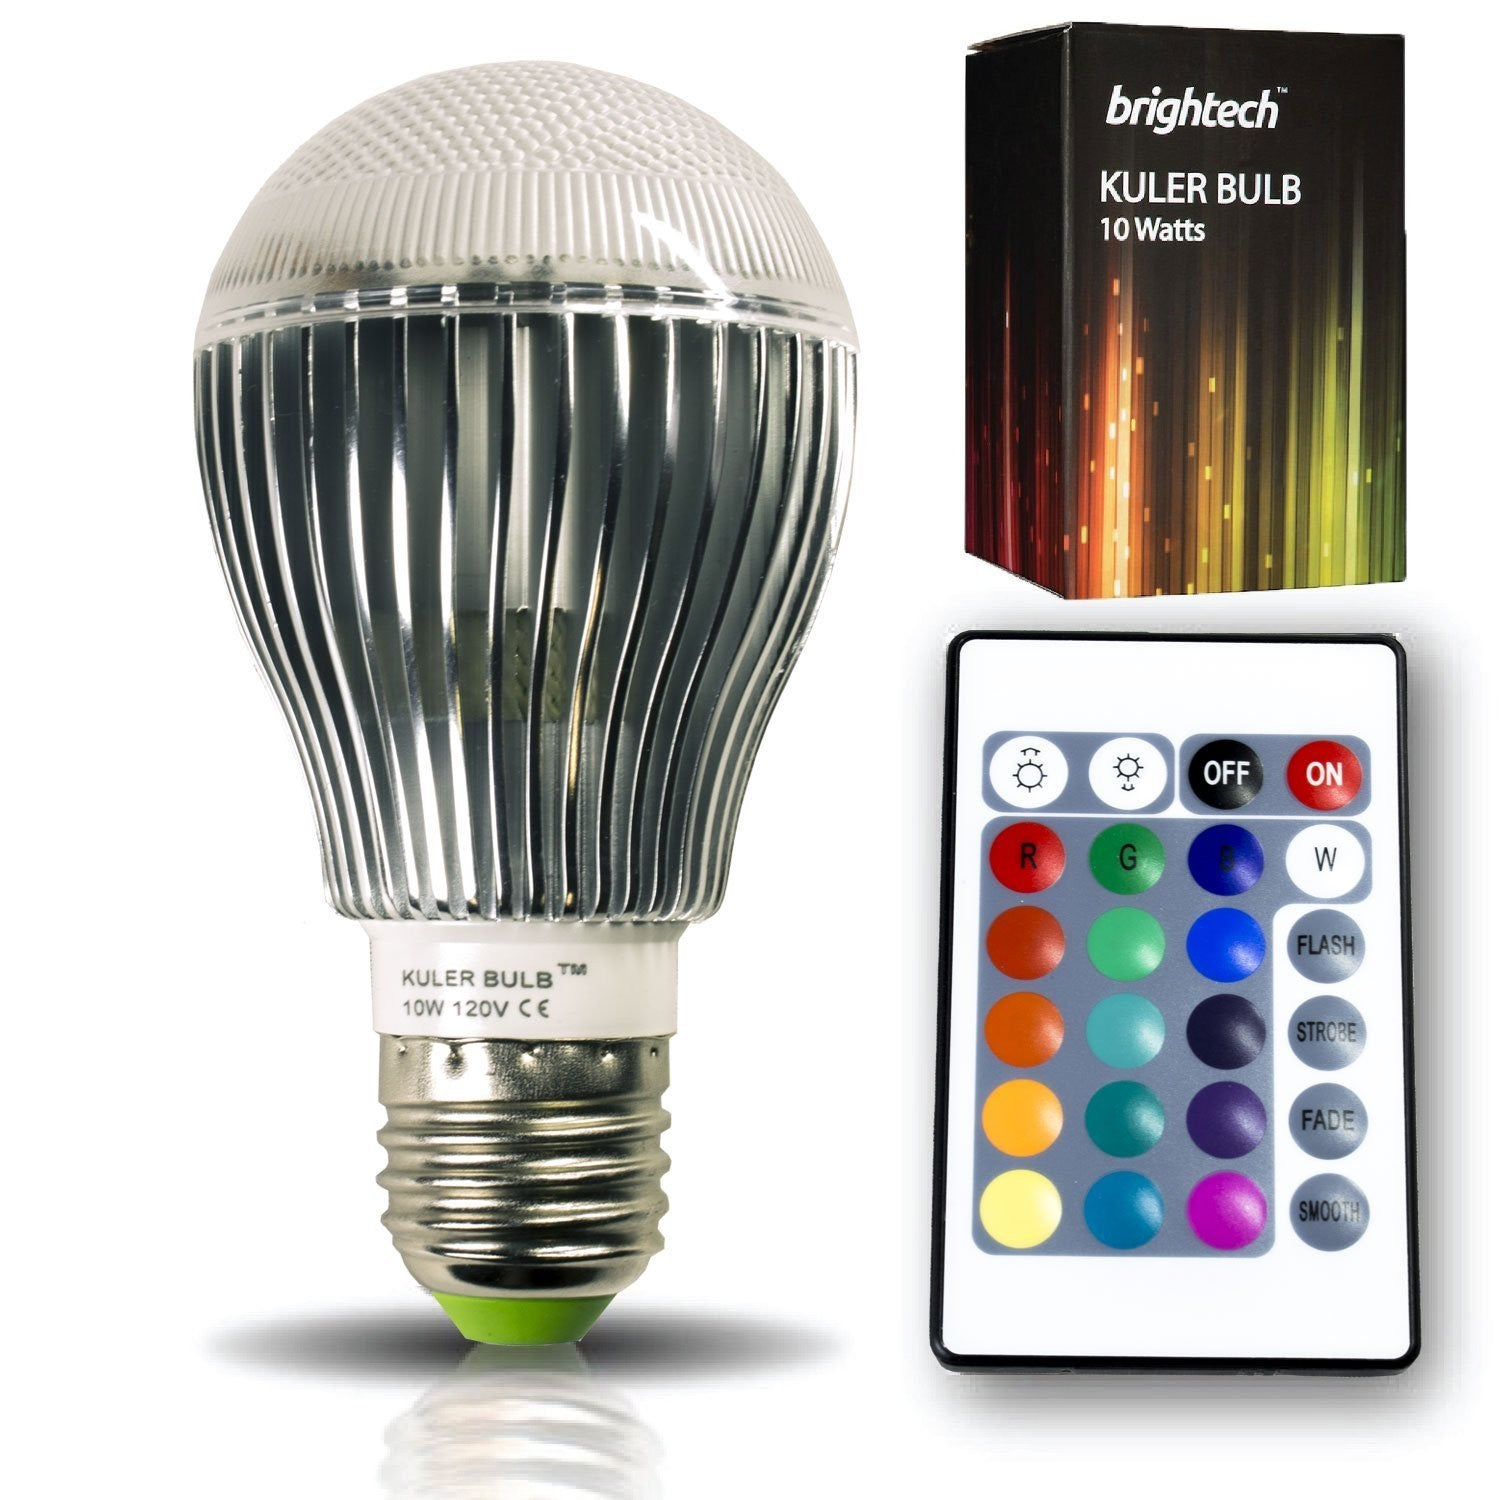 Brightech Store The Original Kuler Bulb 10 Watt Color Changing Led Light Bulb With Remote